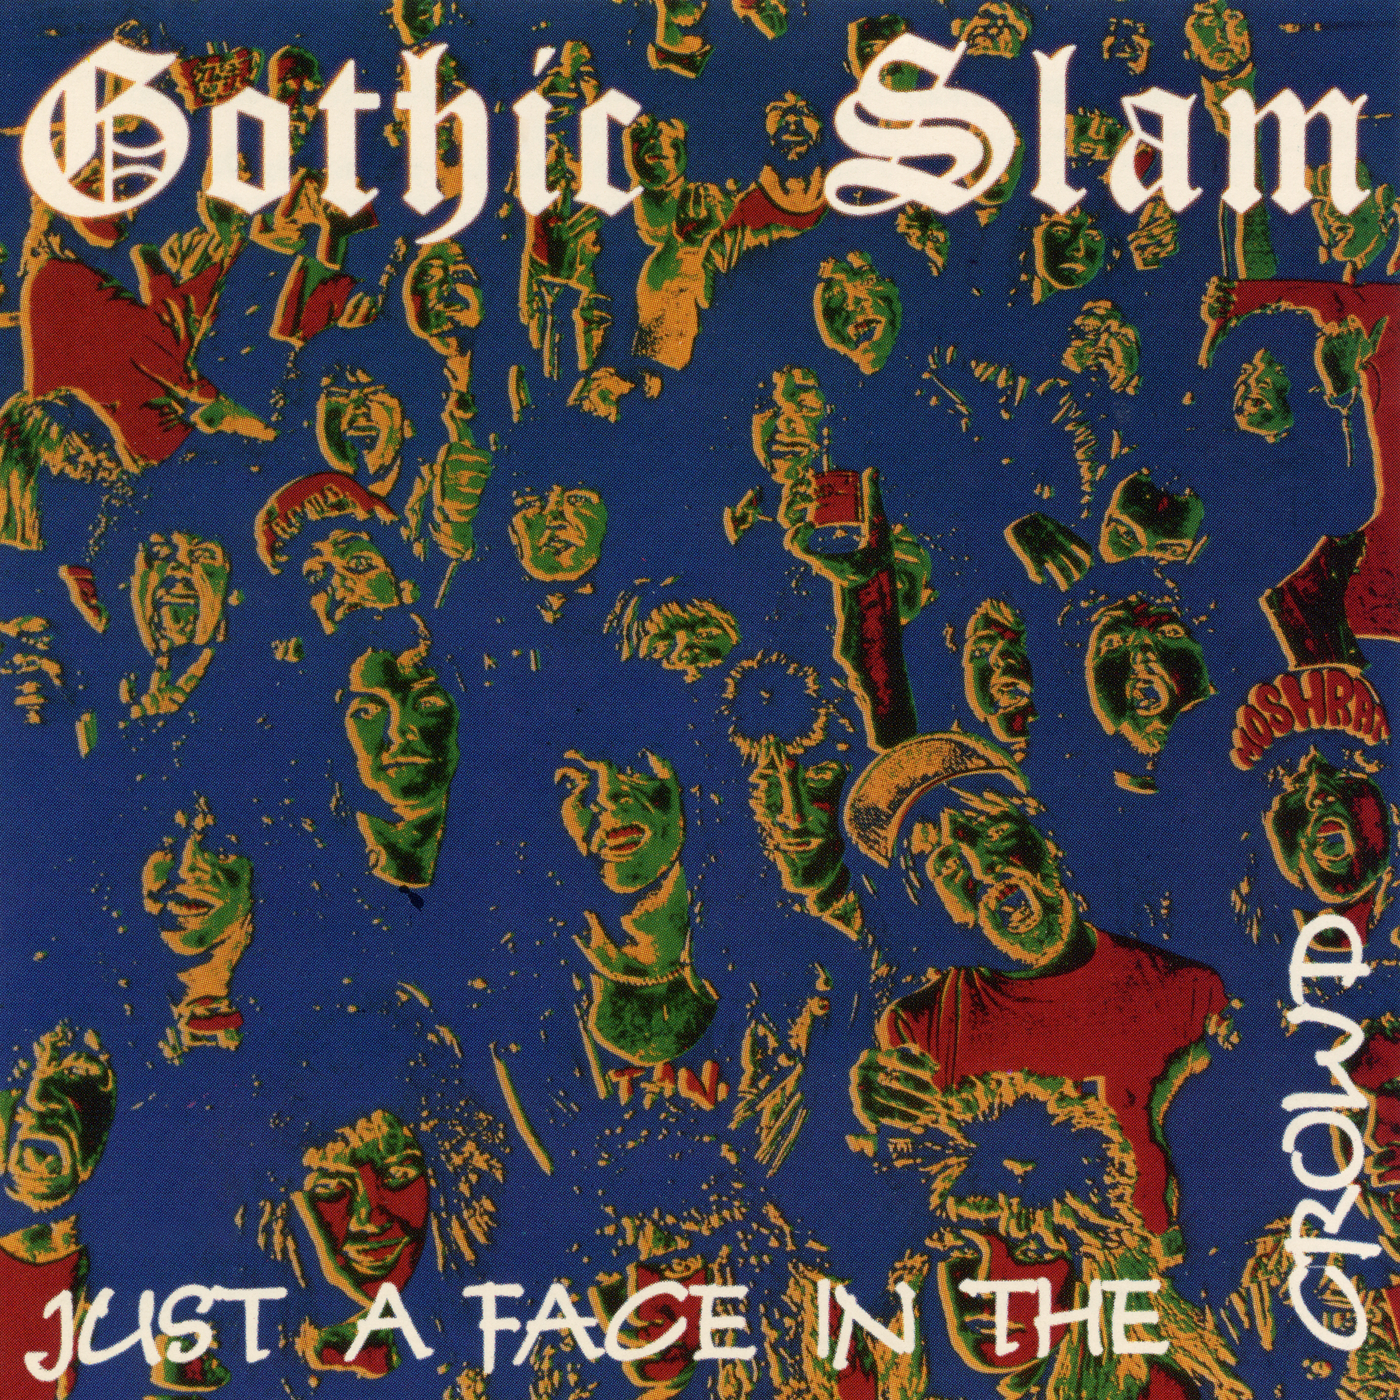 Just a Face In the Crowd - Gothic Slam